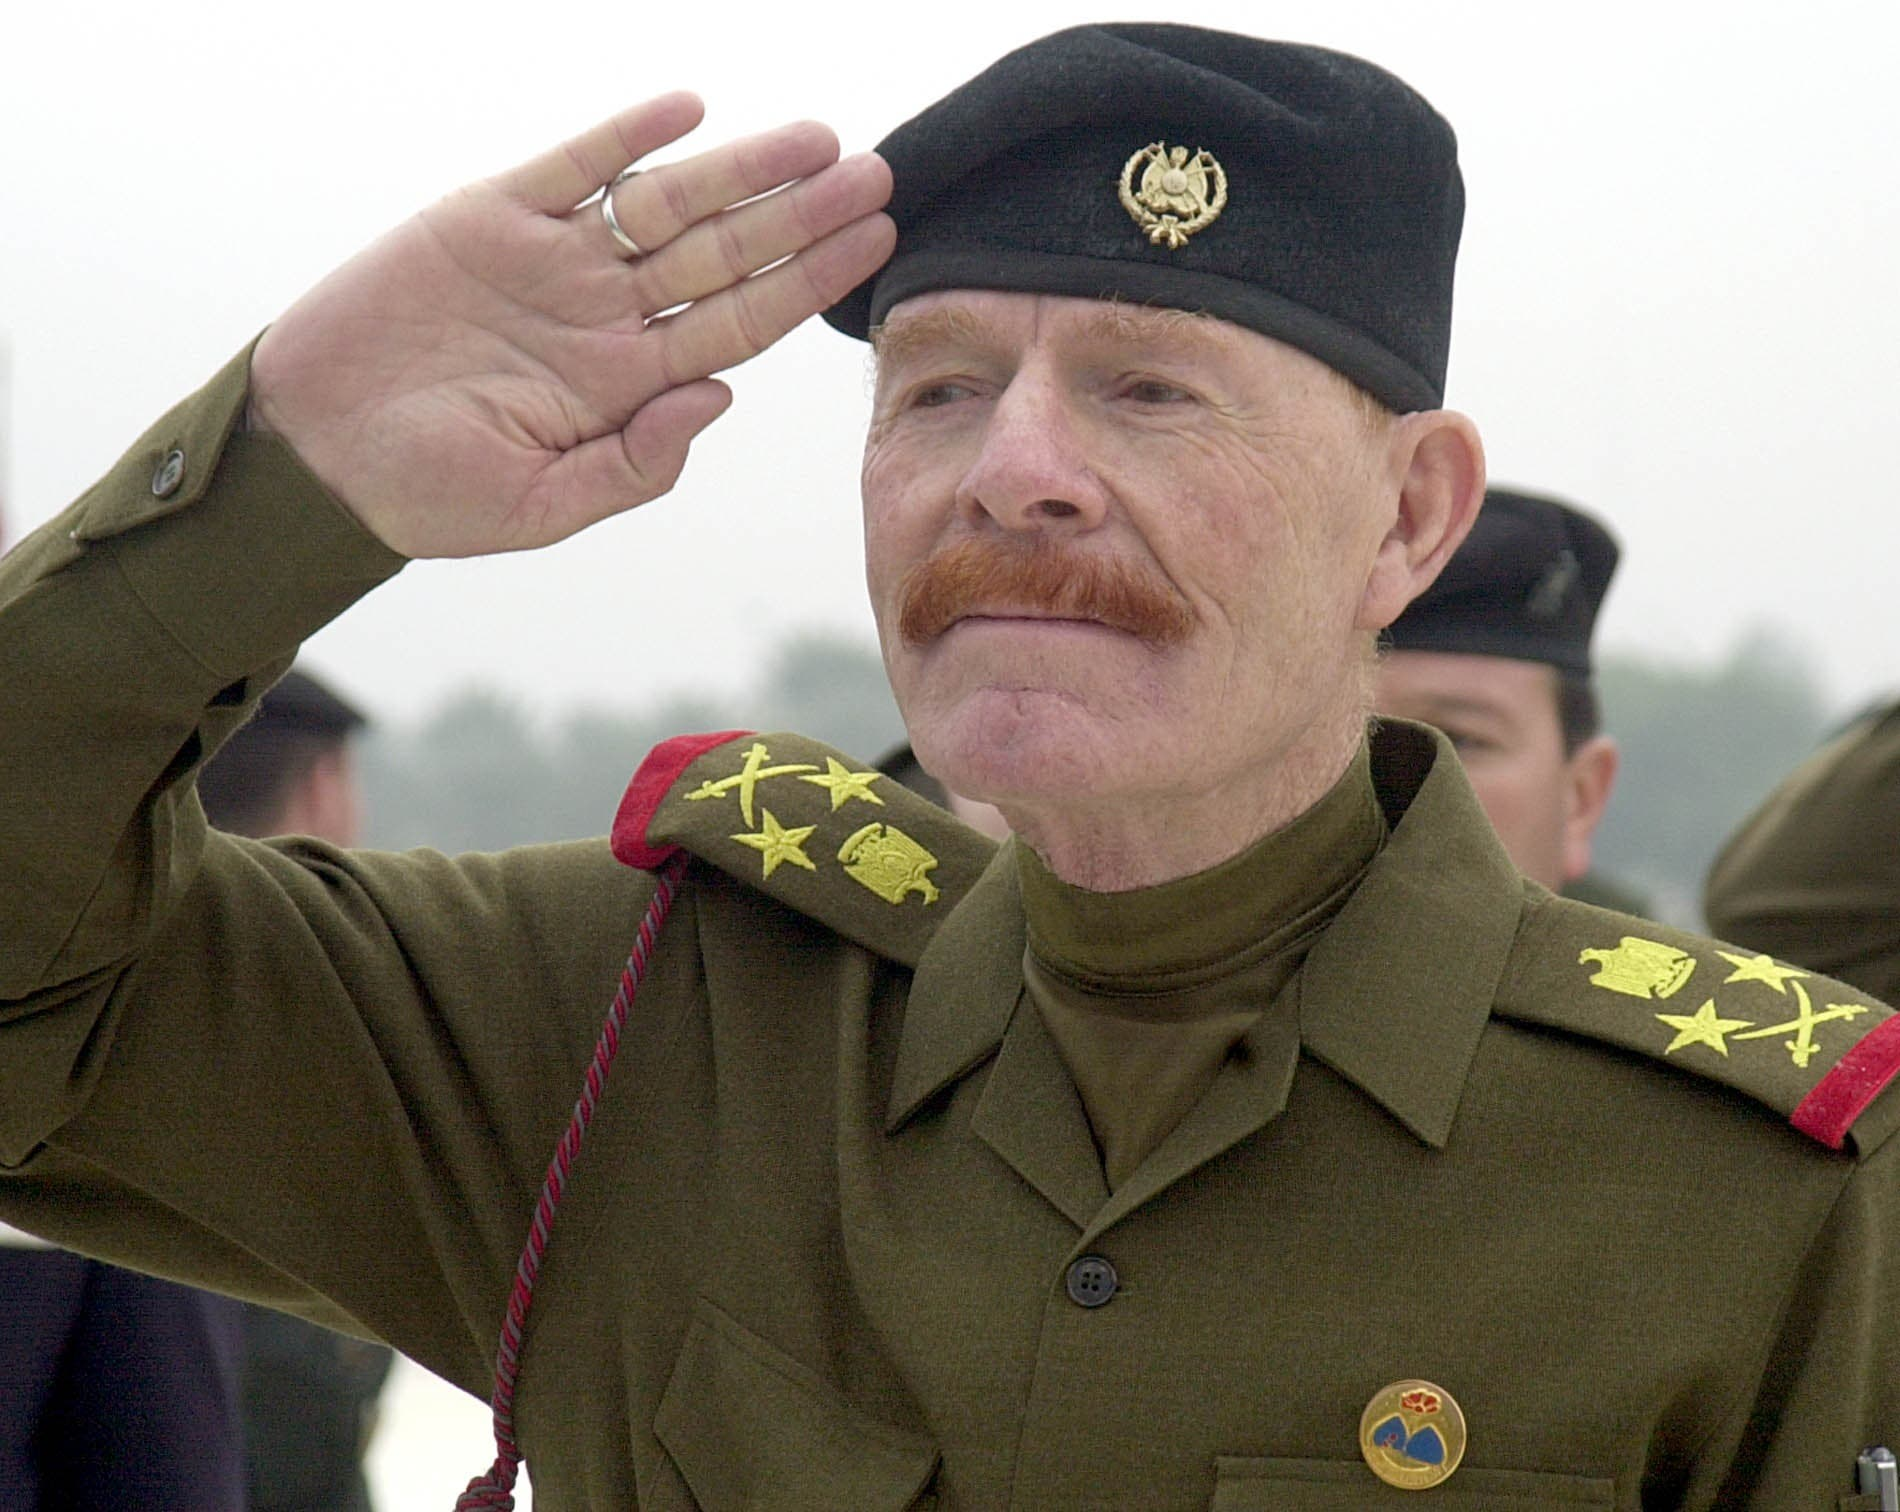 Iraqi Vice chairman of the Revolutionary Command Council, Izzat Ibrahim al-Douri during a ceremony at the huge Martyrs Monument in Baghdad on Sunday, Dec. 1, 2002. (File photo: AP)